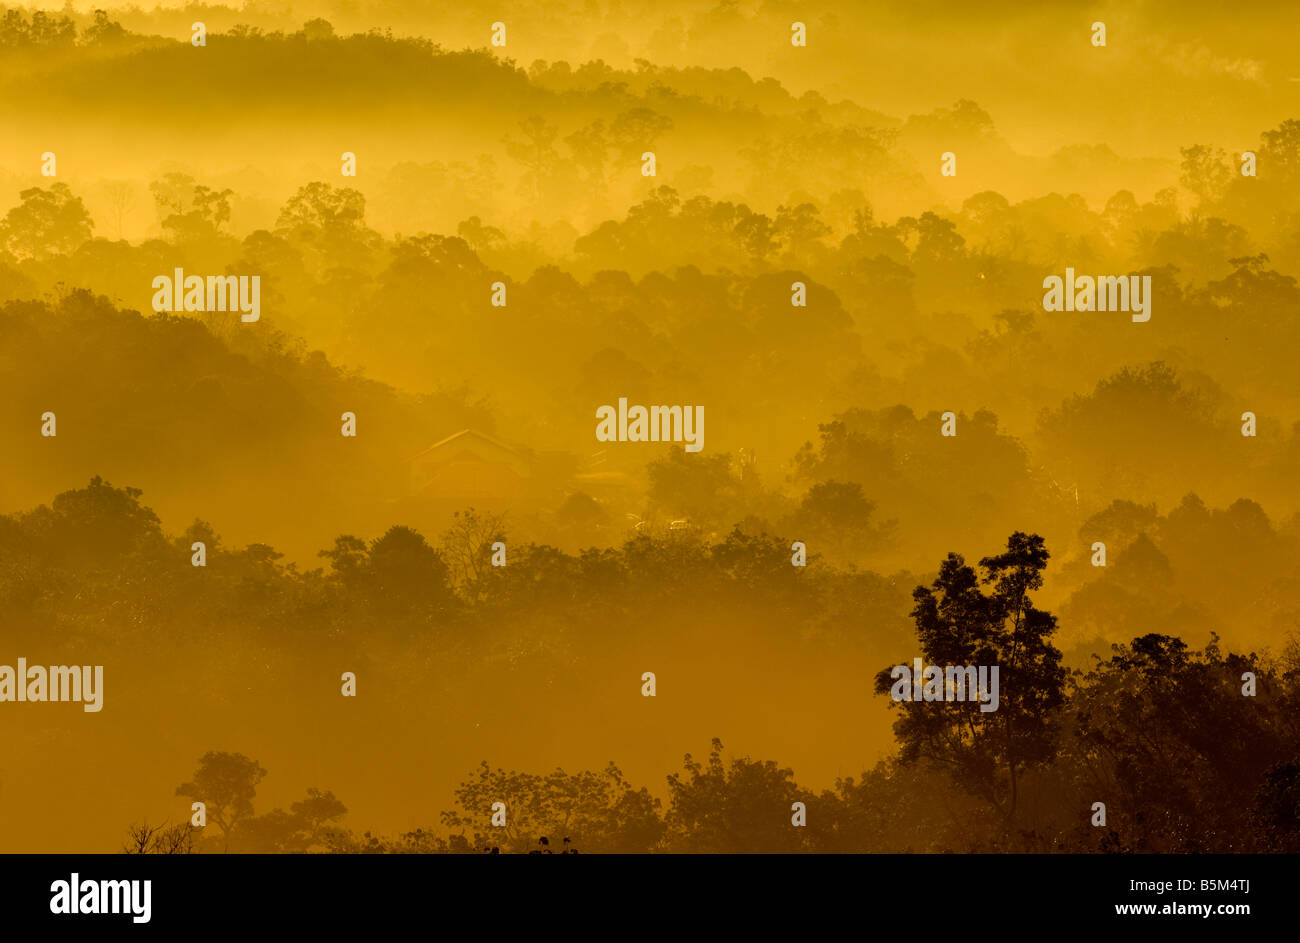 Golden colors of misty hilly area with ray of light Stock Photo